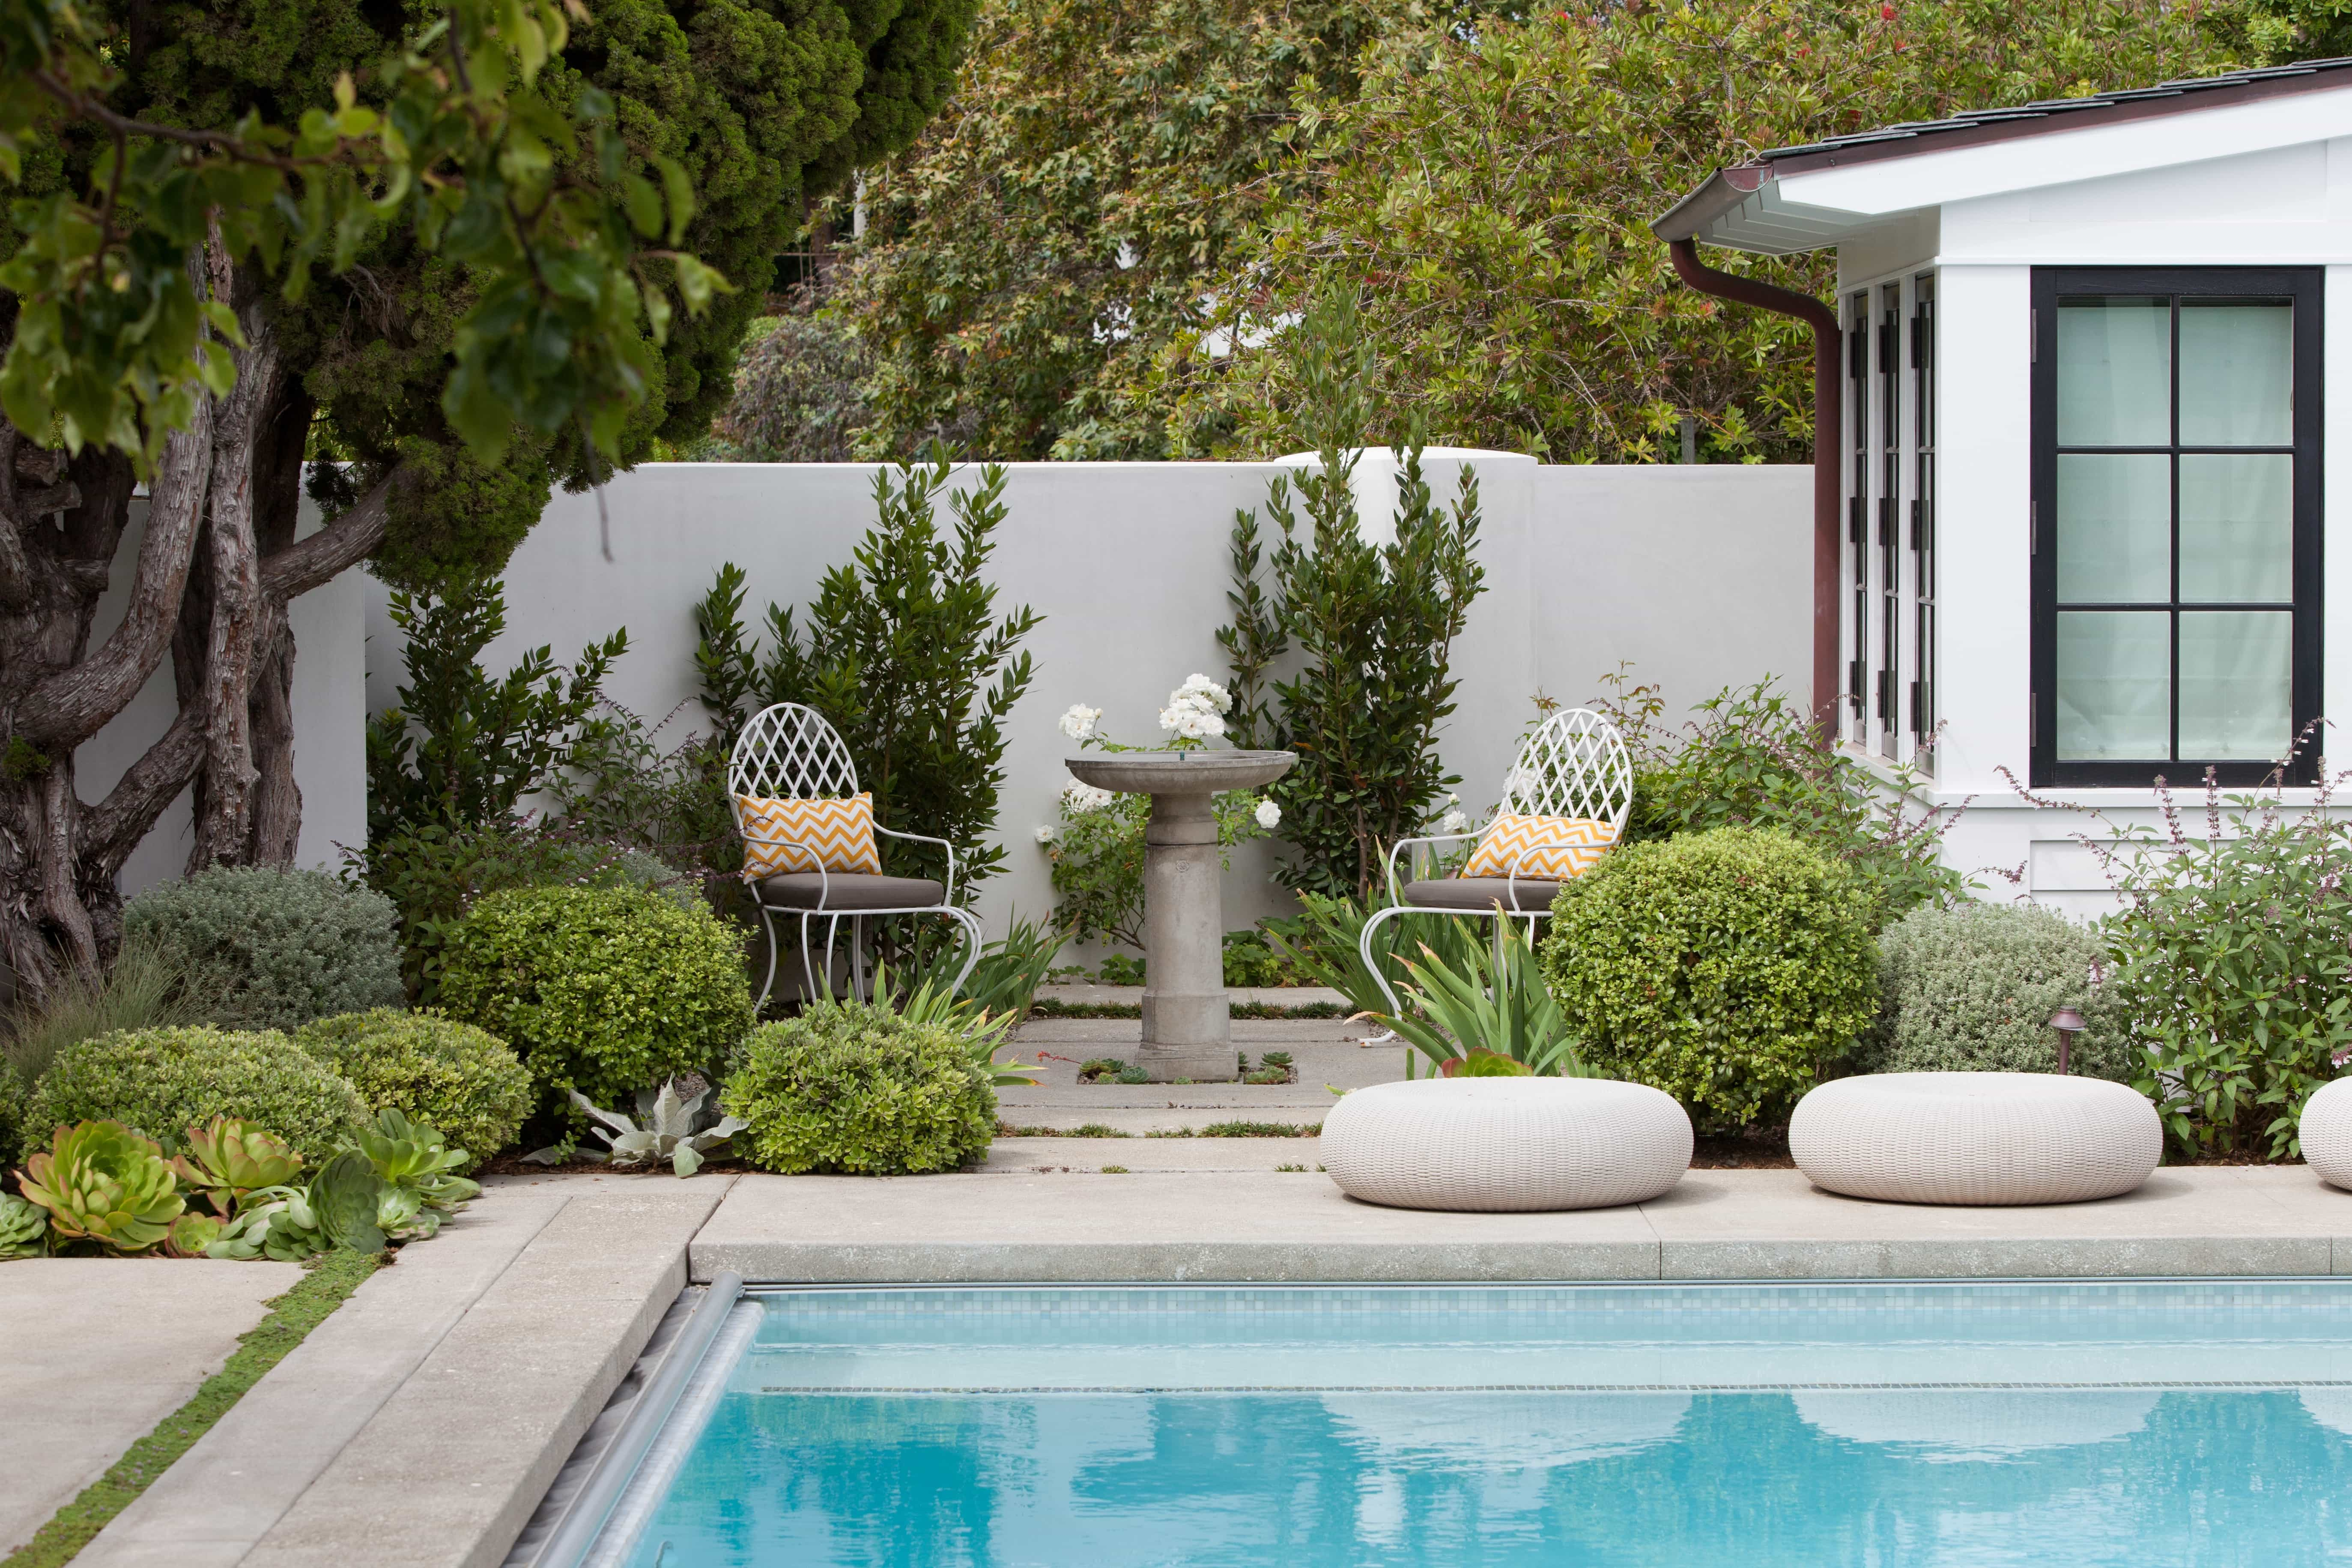 Contemporary Outdoor Pool With Lounge Chairs And Garden (View 20 of 25)